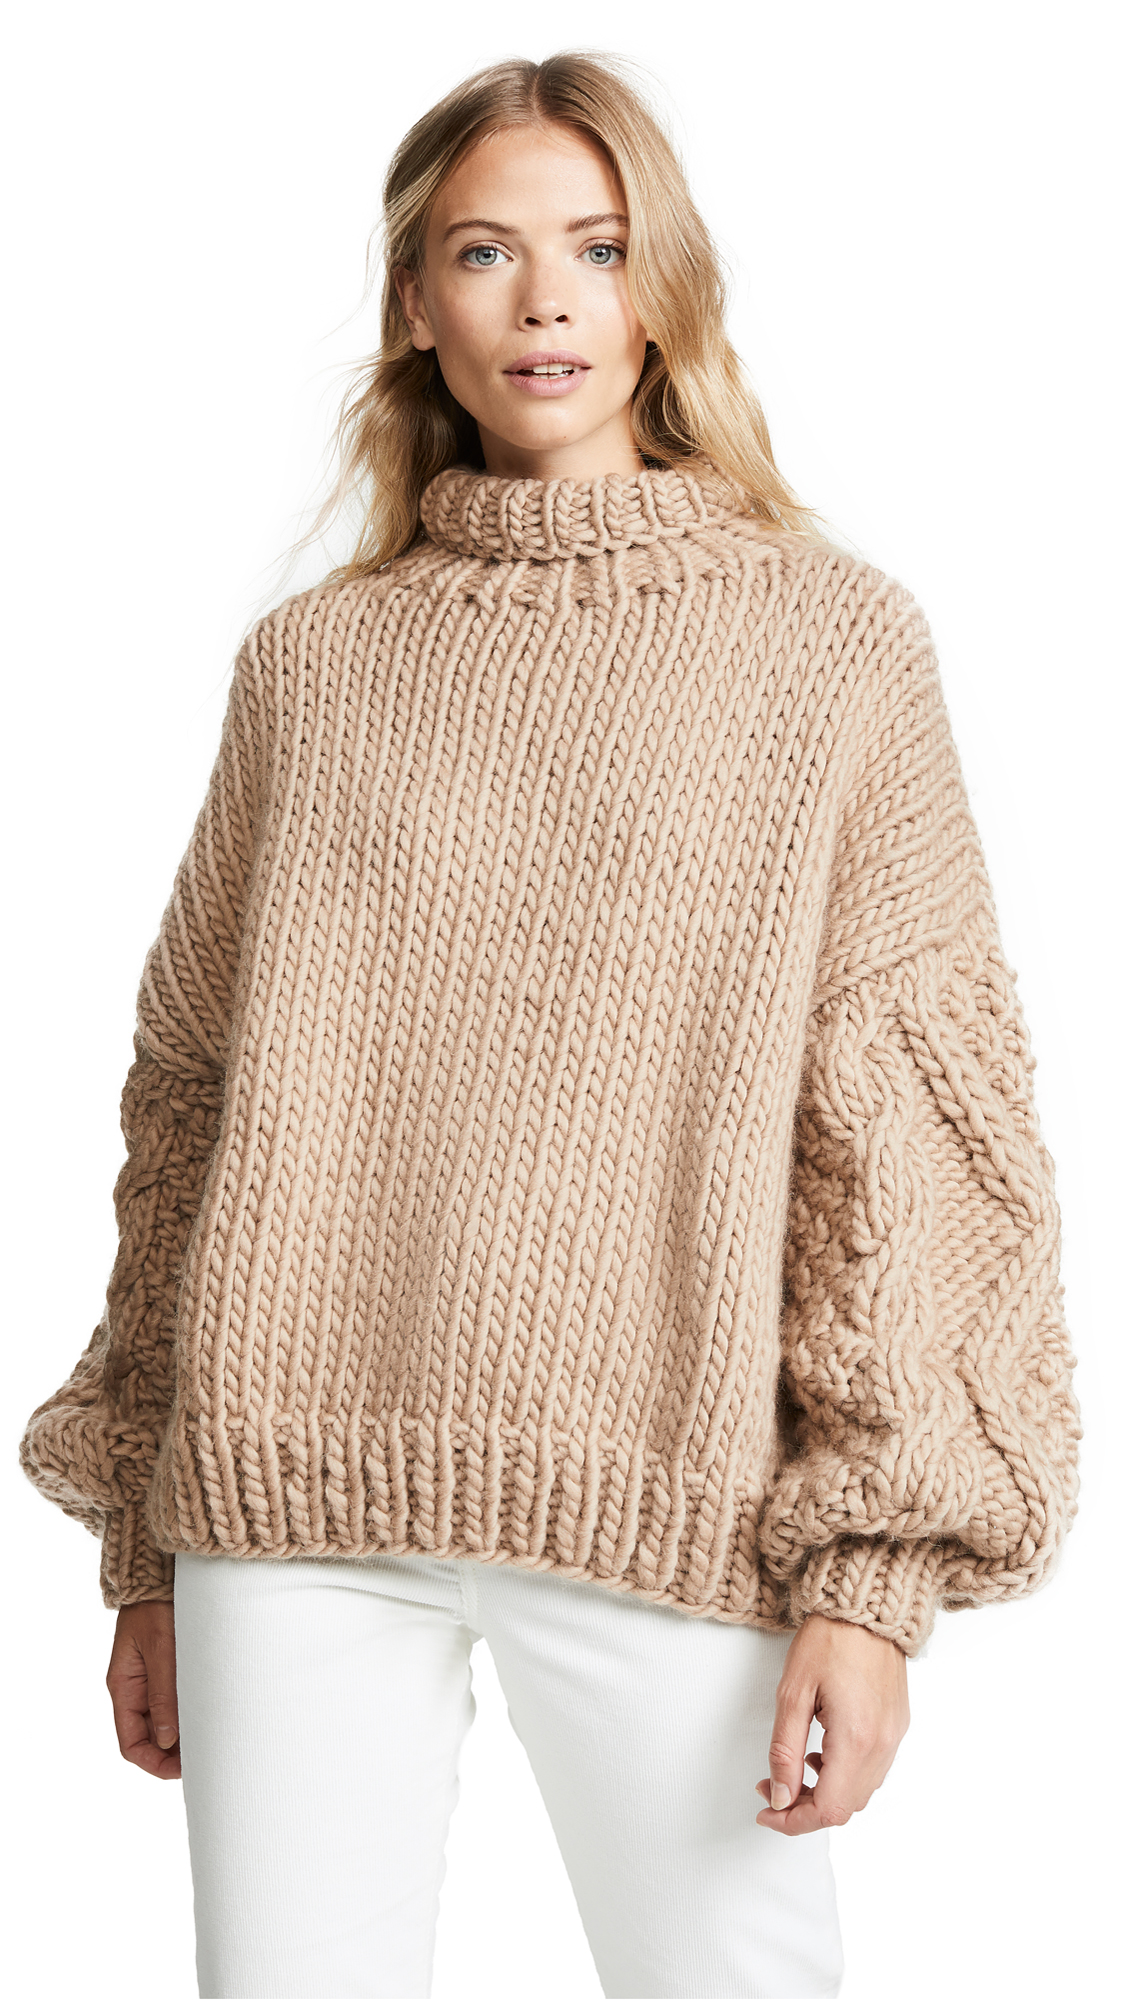 I LOVE MR. MITTENS Diamond Sleeve High Neck Sweater in Taupe